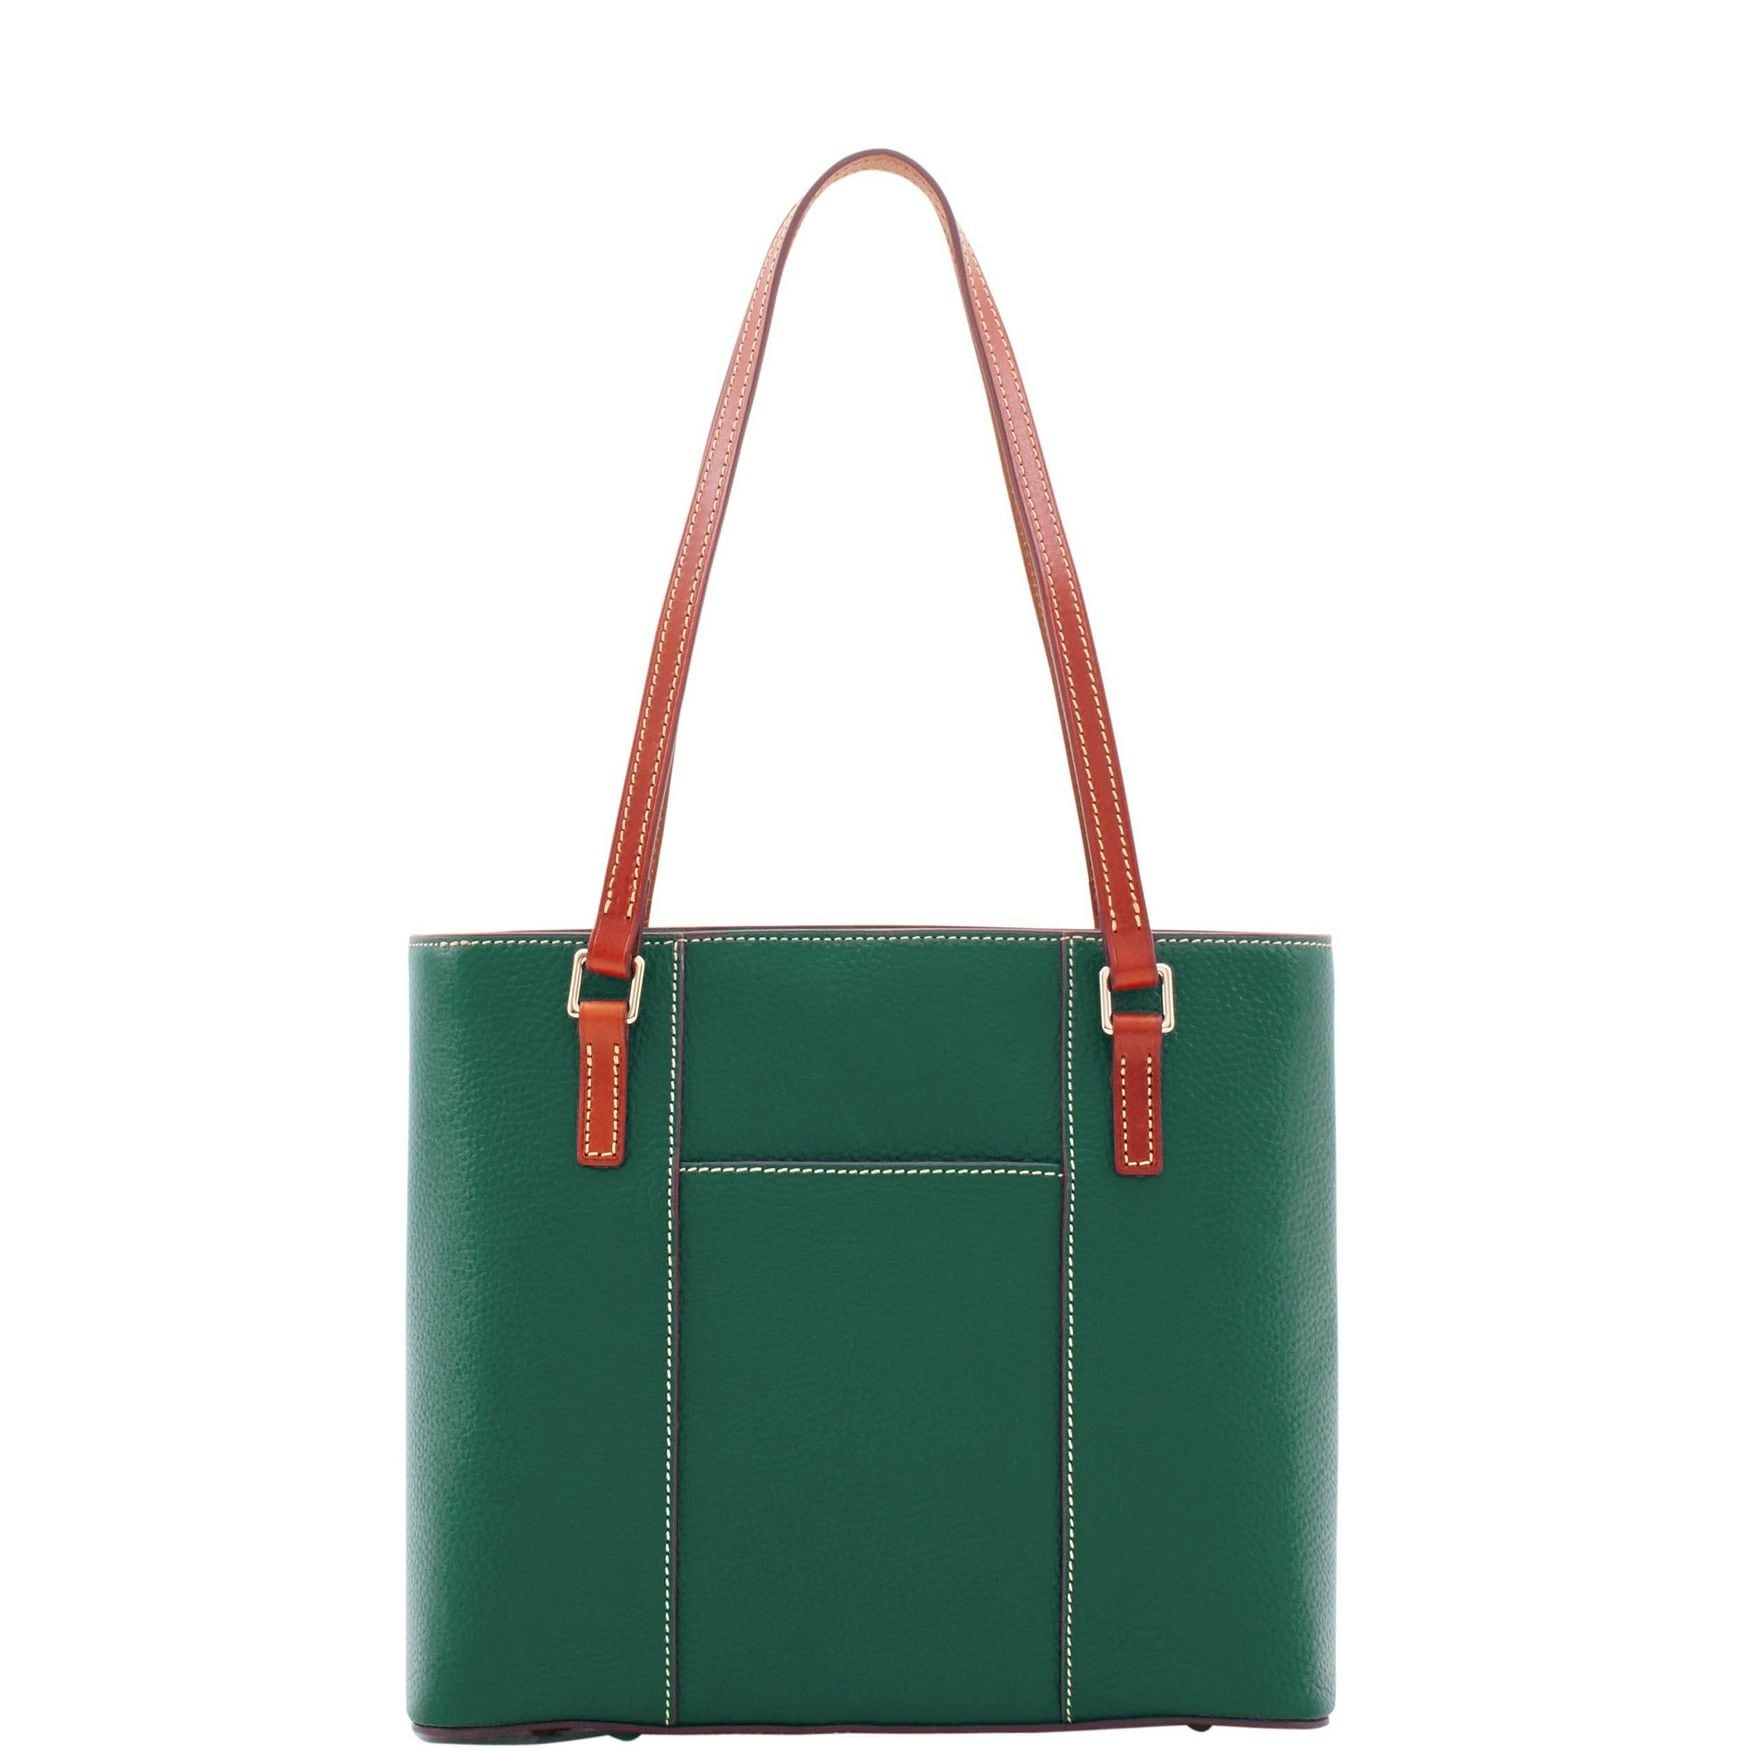 9ca51428 Shop Dooney & Bourke NFL Green Bay Packers Small Lexington Bag (Introduced  by Dooney & Bourke in Jul 2018) - Free Shipping Today - Overstock - 23141787